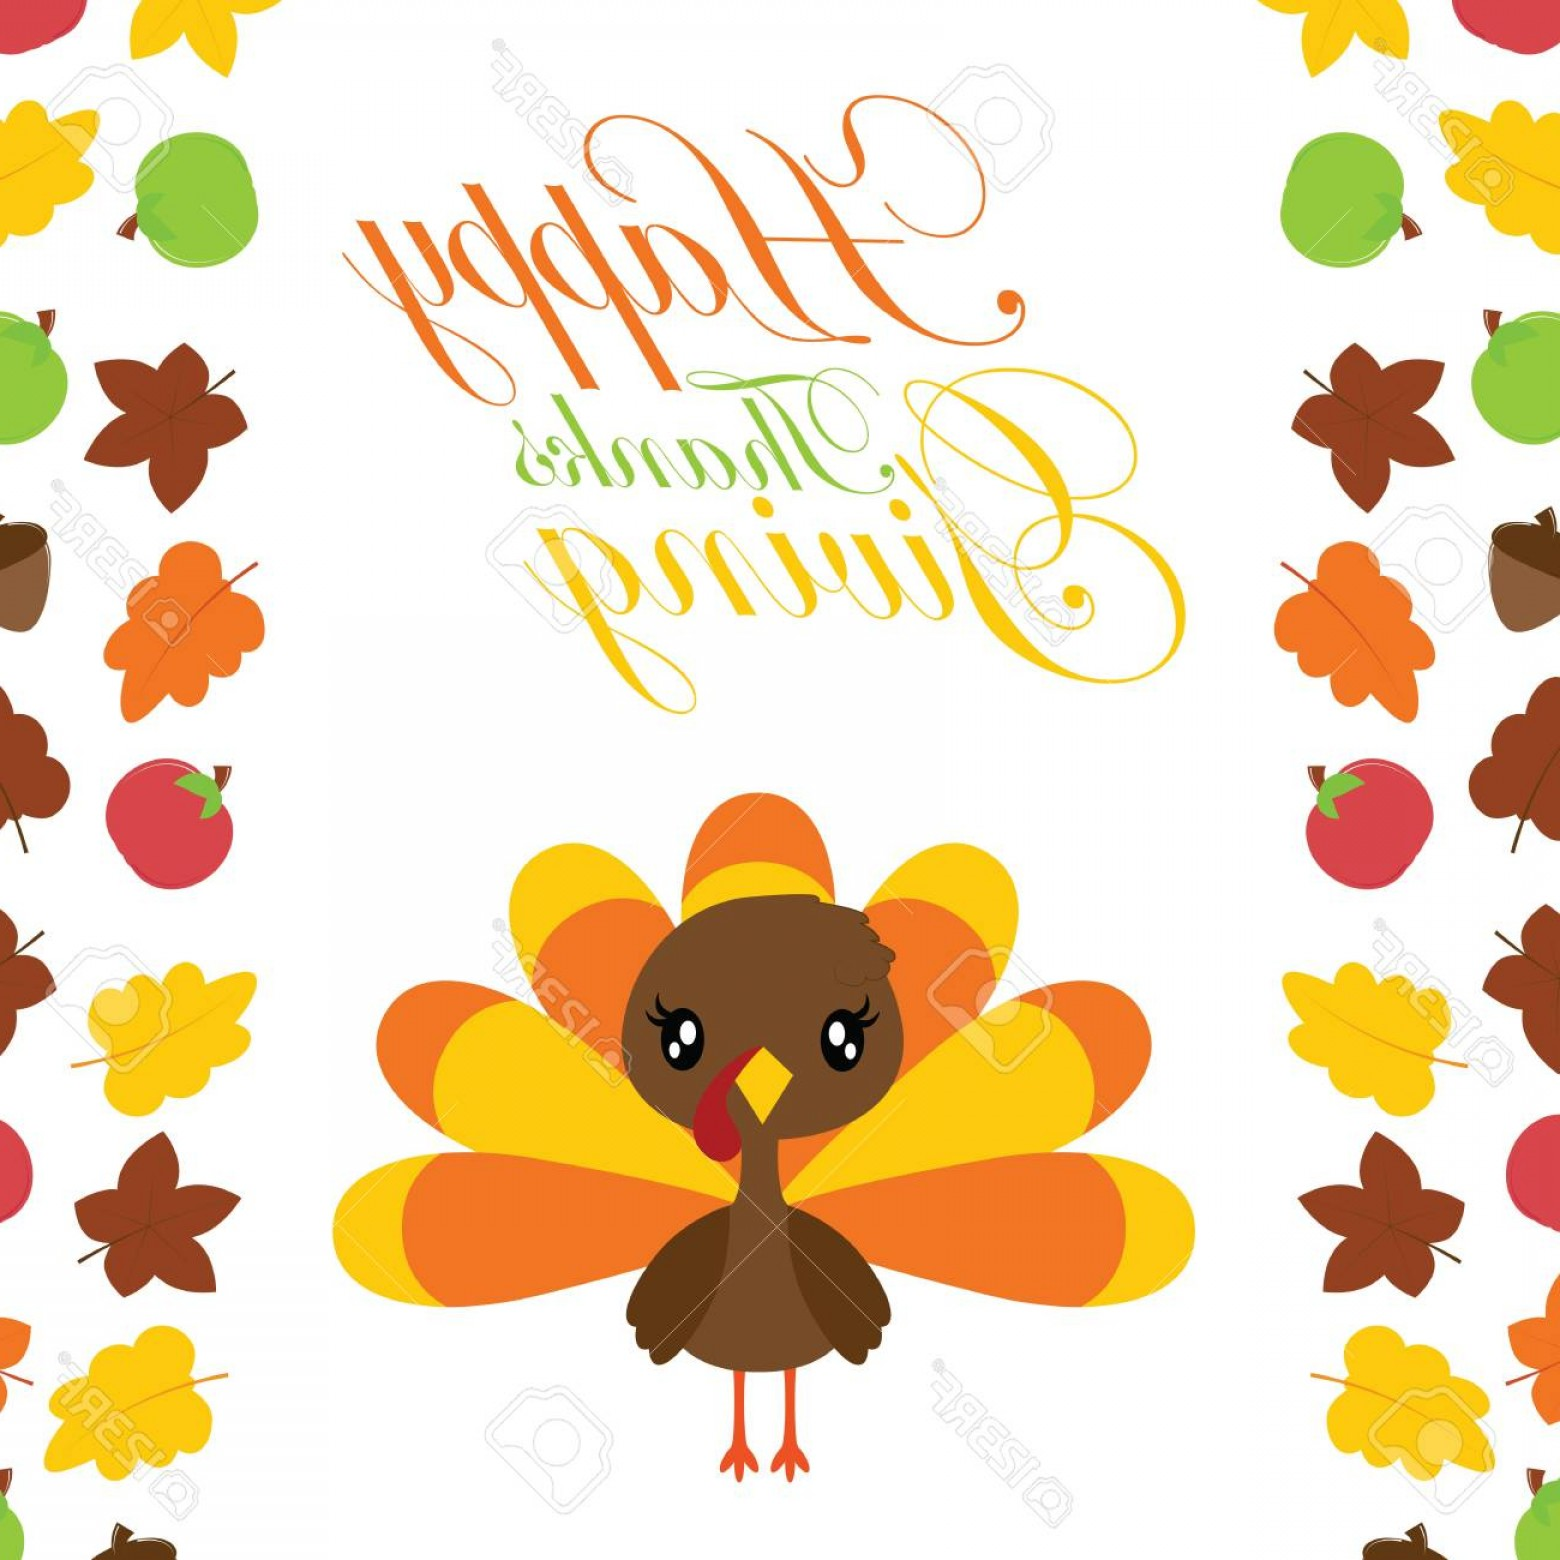 Thanksgiving Border Vector: Photostock Vector Cute Turkey Girl In The Middle Of Maples Leaves Border Vector Cartoon Illustration For Thanksgiving